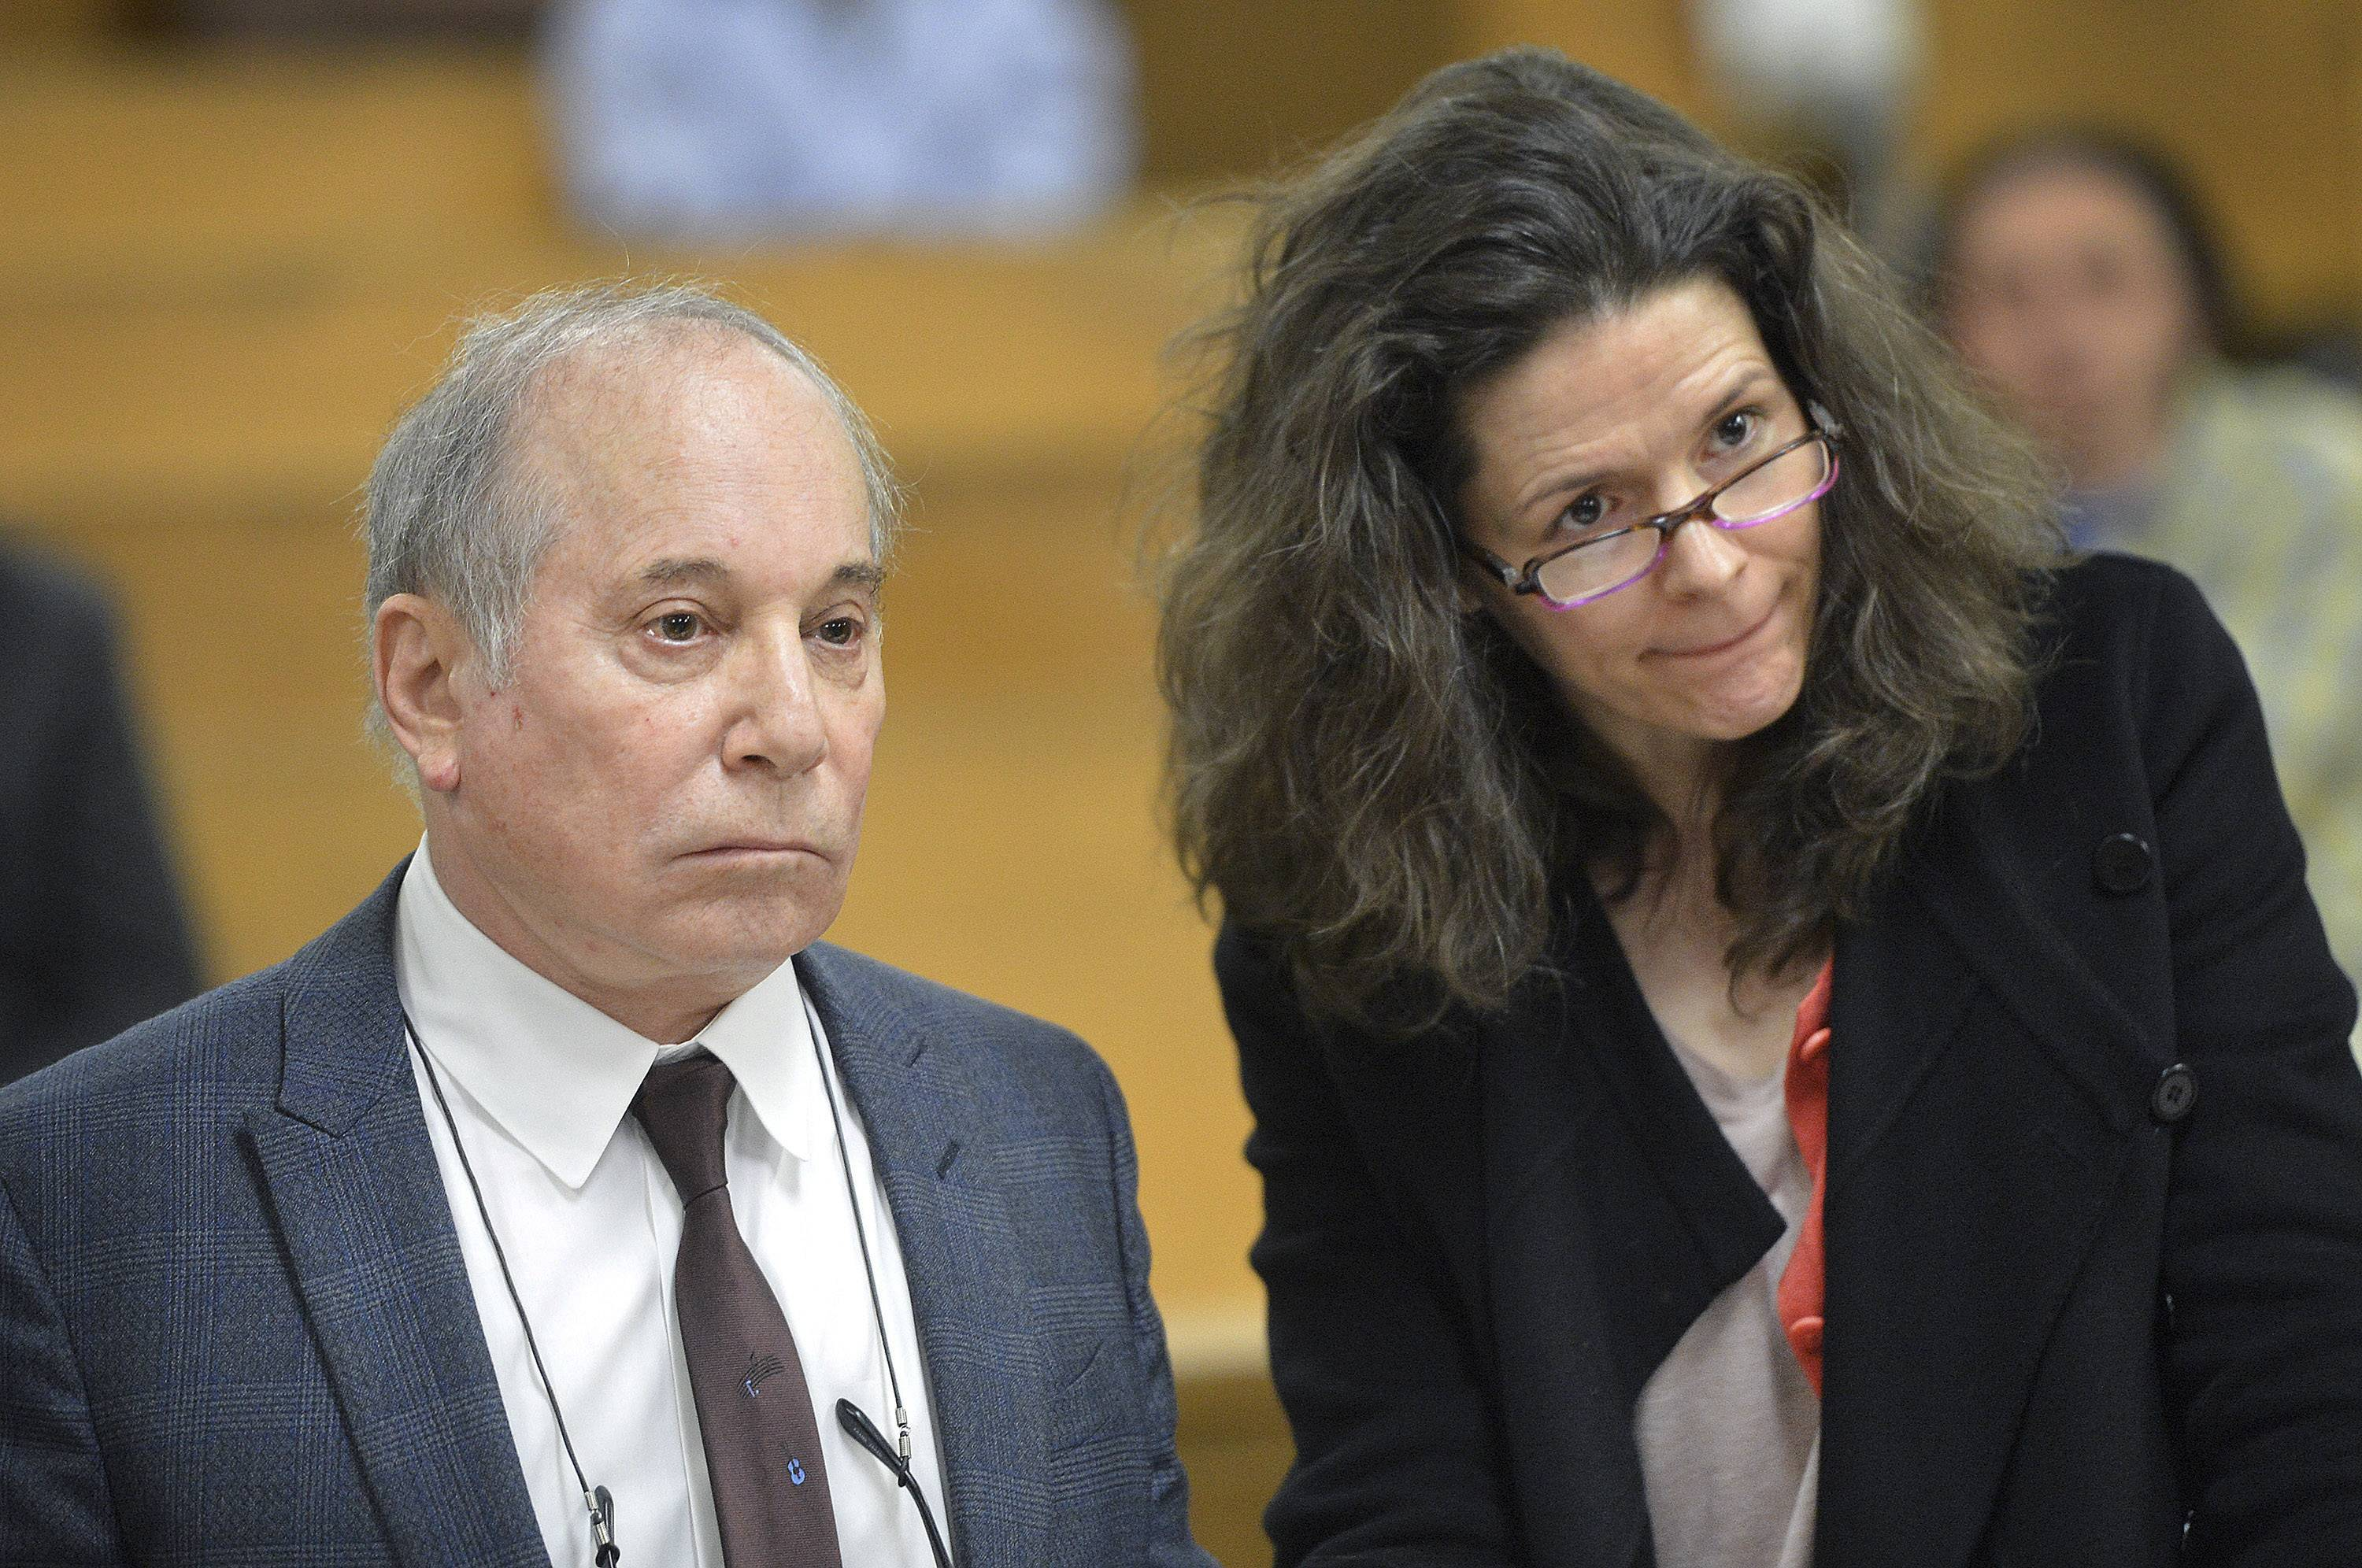 Singer Paul Simon and his wife, Edie Brickell, appear at a hearing in Norwalk Superior Court on Monday in Norwalk, Conn. The couple were arrested Saturday on disorderly conduct charges by officers investigating a family dispute at their home in New Canaan, Conn.